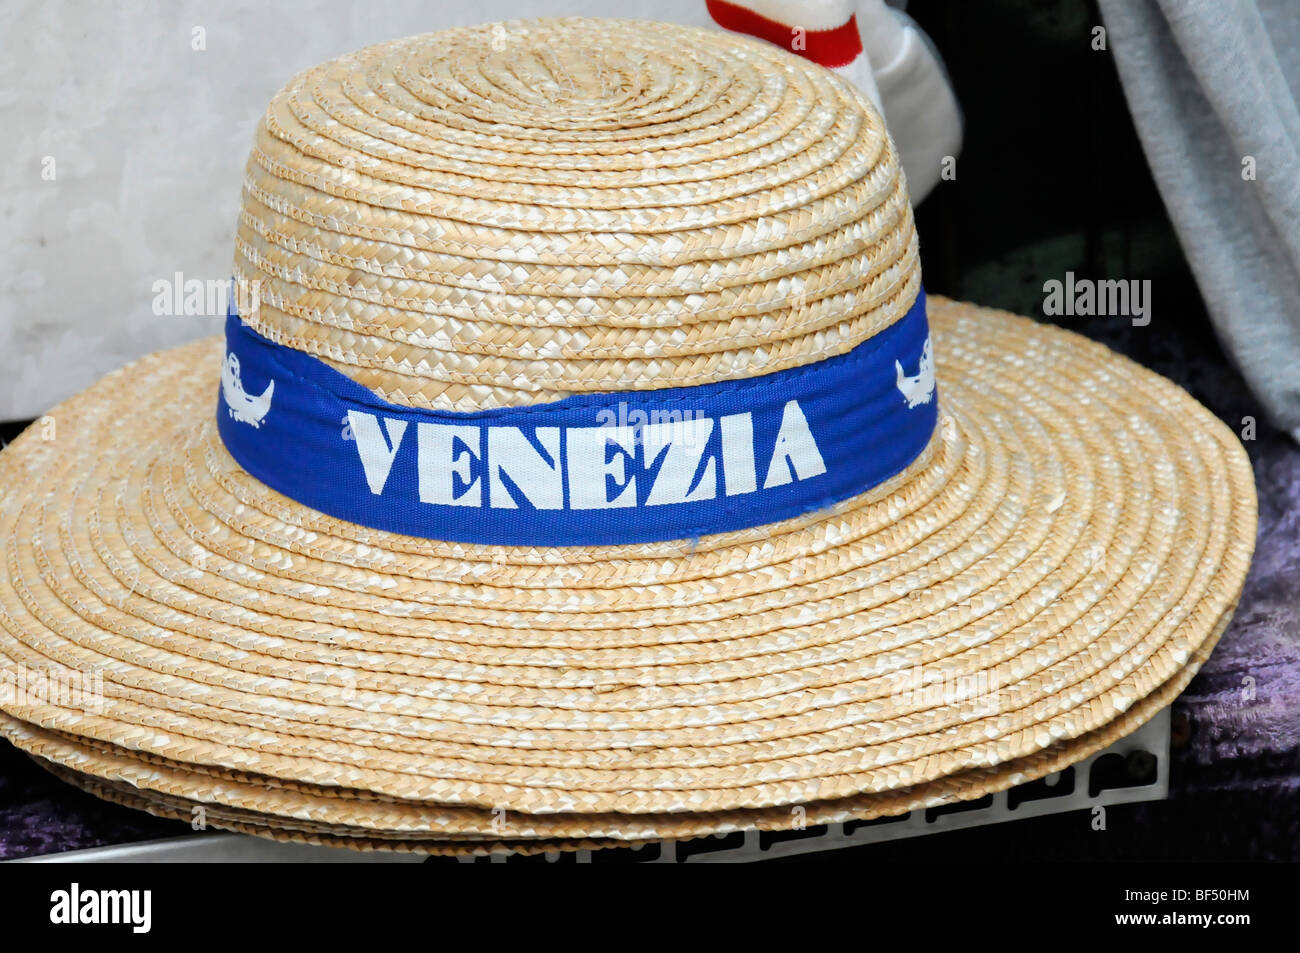 0911a5eb5c1 Gondolier Hats Stock Photos   Gondolier Hats Stock Images - Alamy